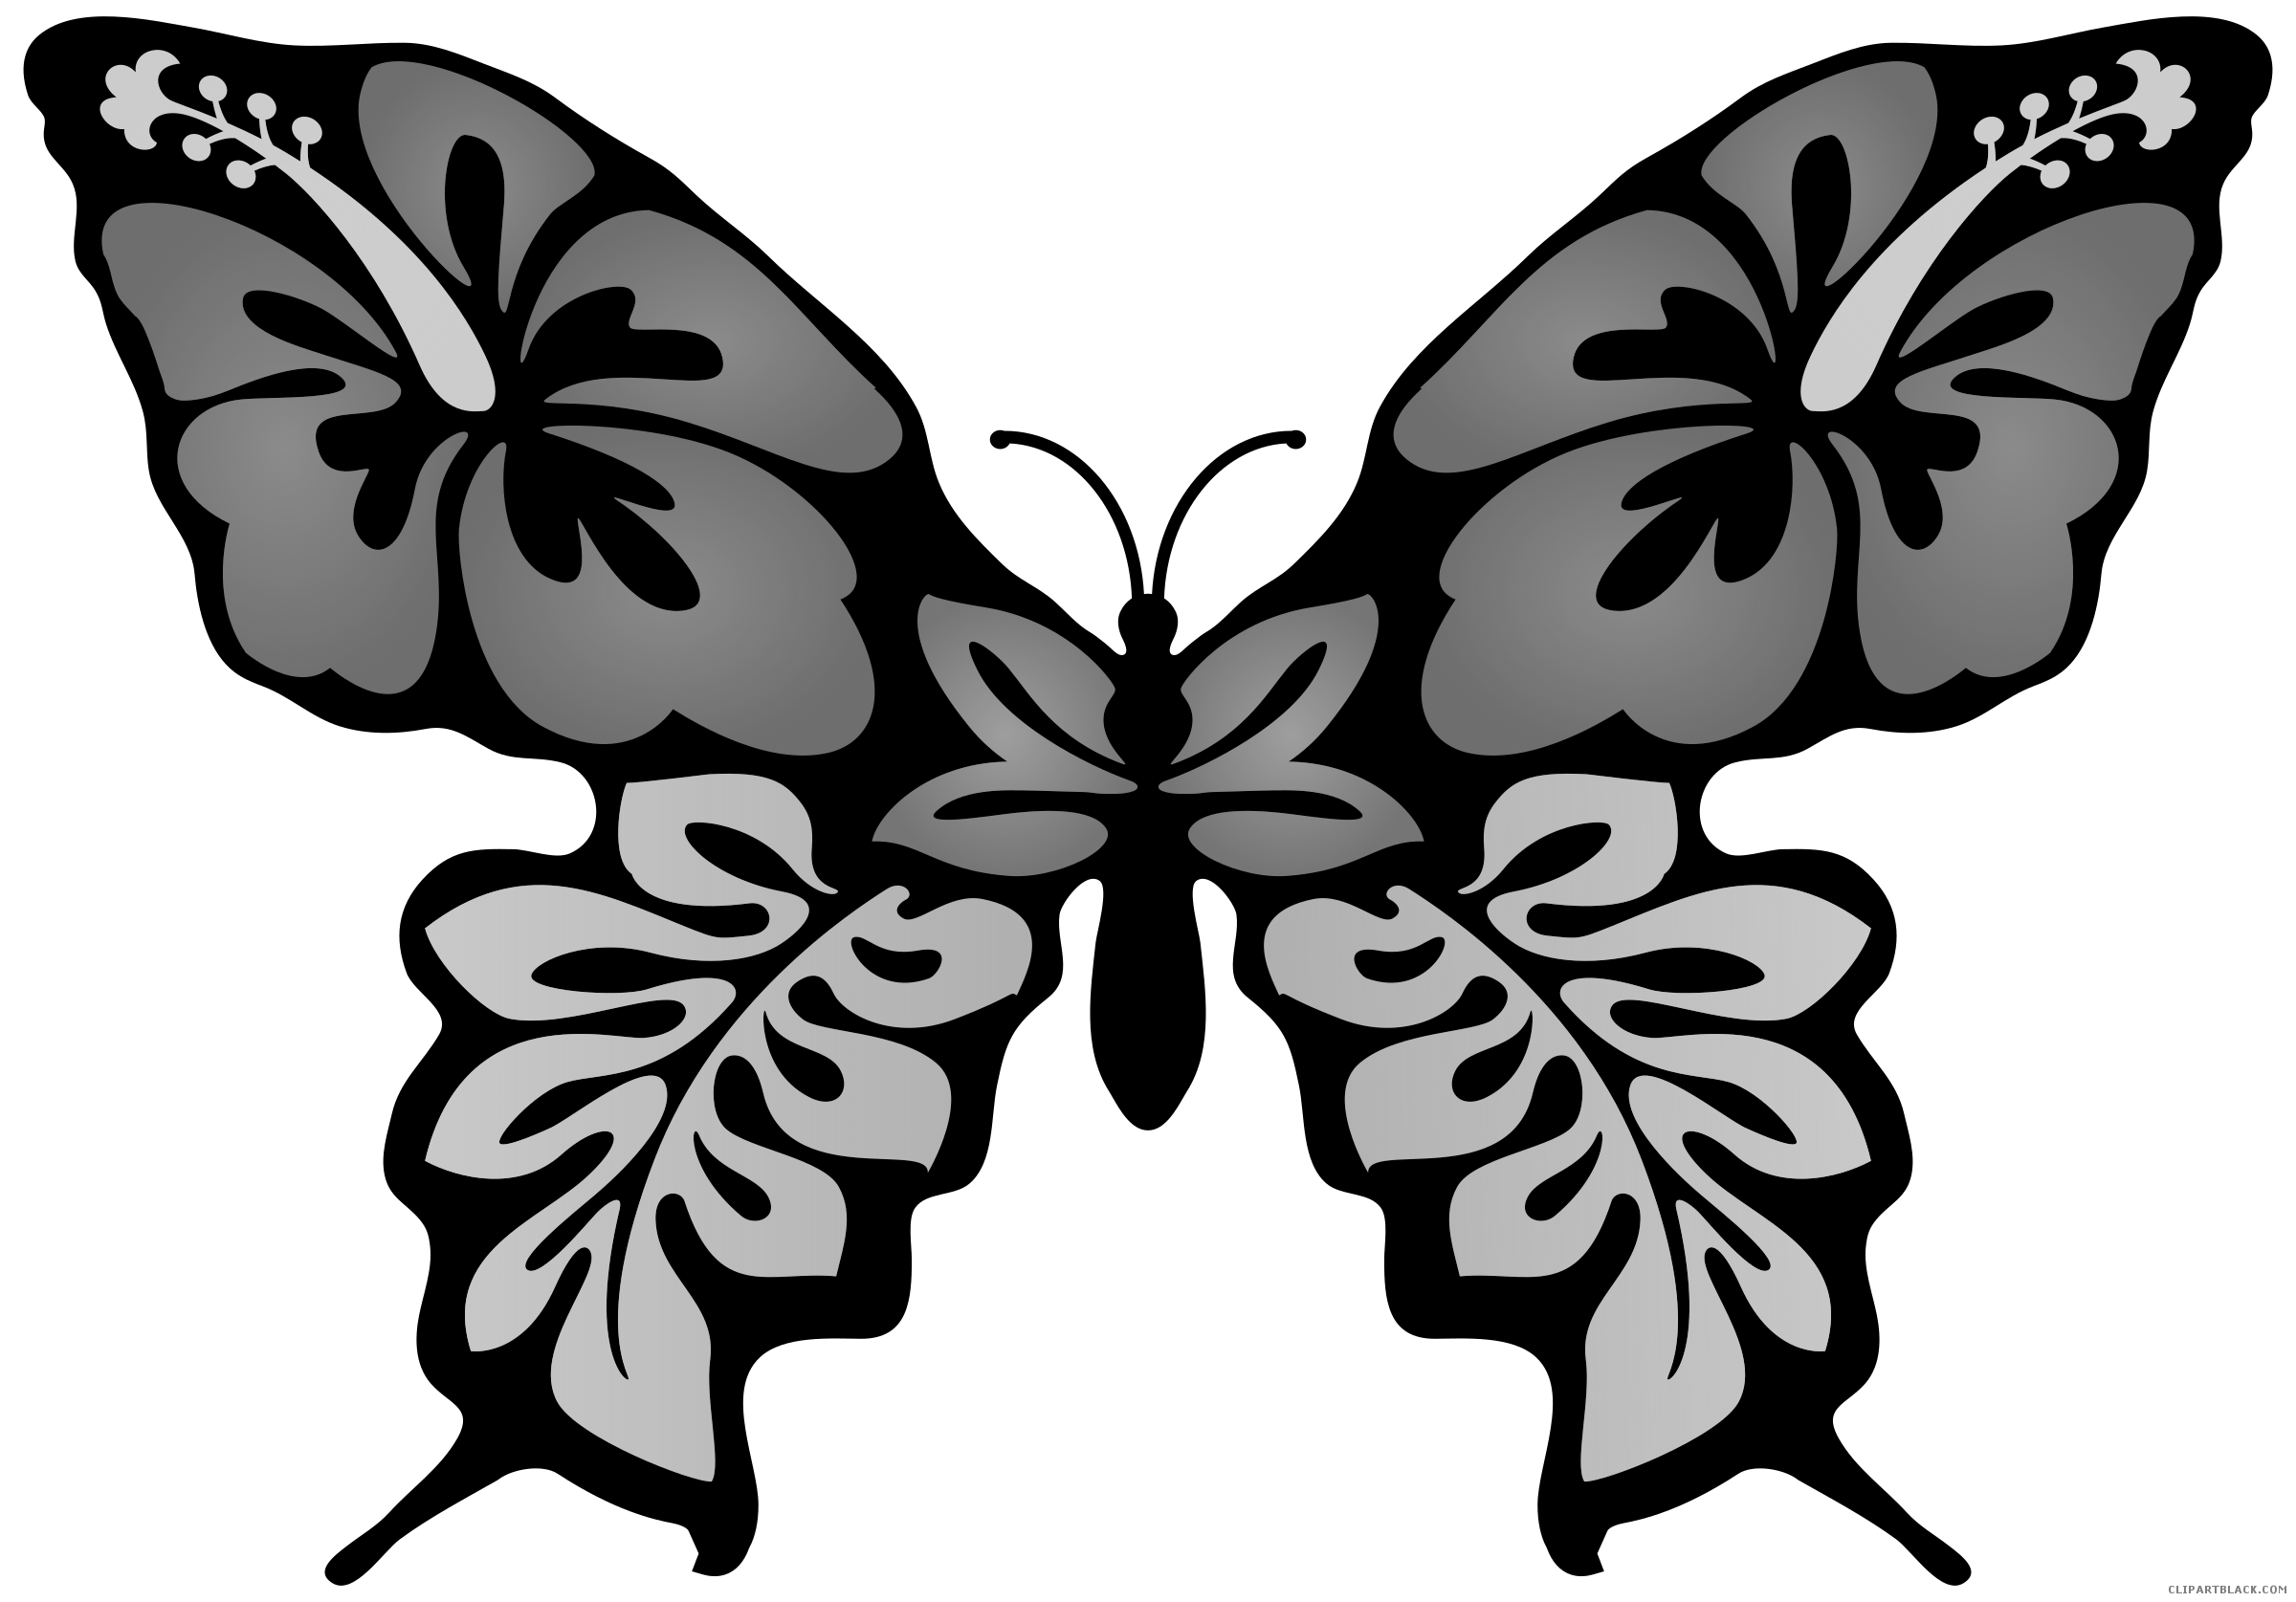 Butterfly on flower clipart black and white royalty free Butterfly Flower Clipart - ClipartBlack.com royalty free